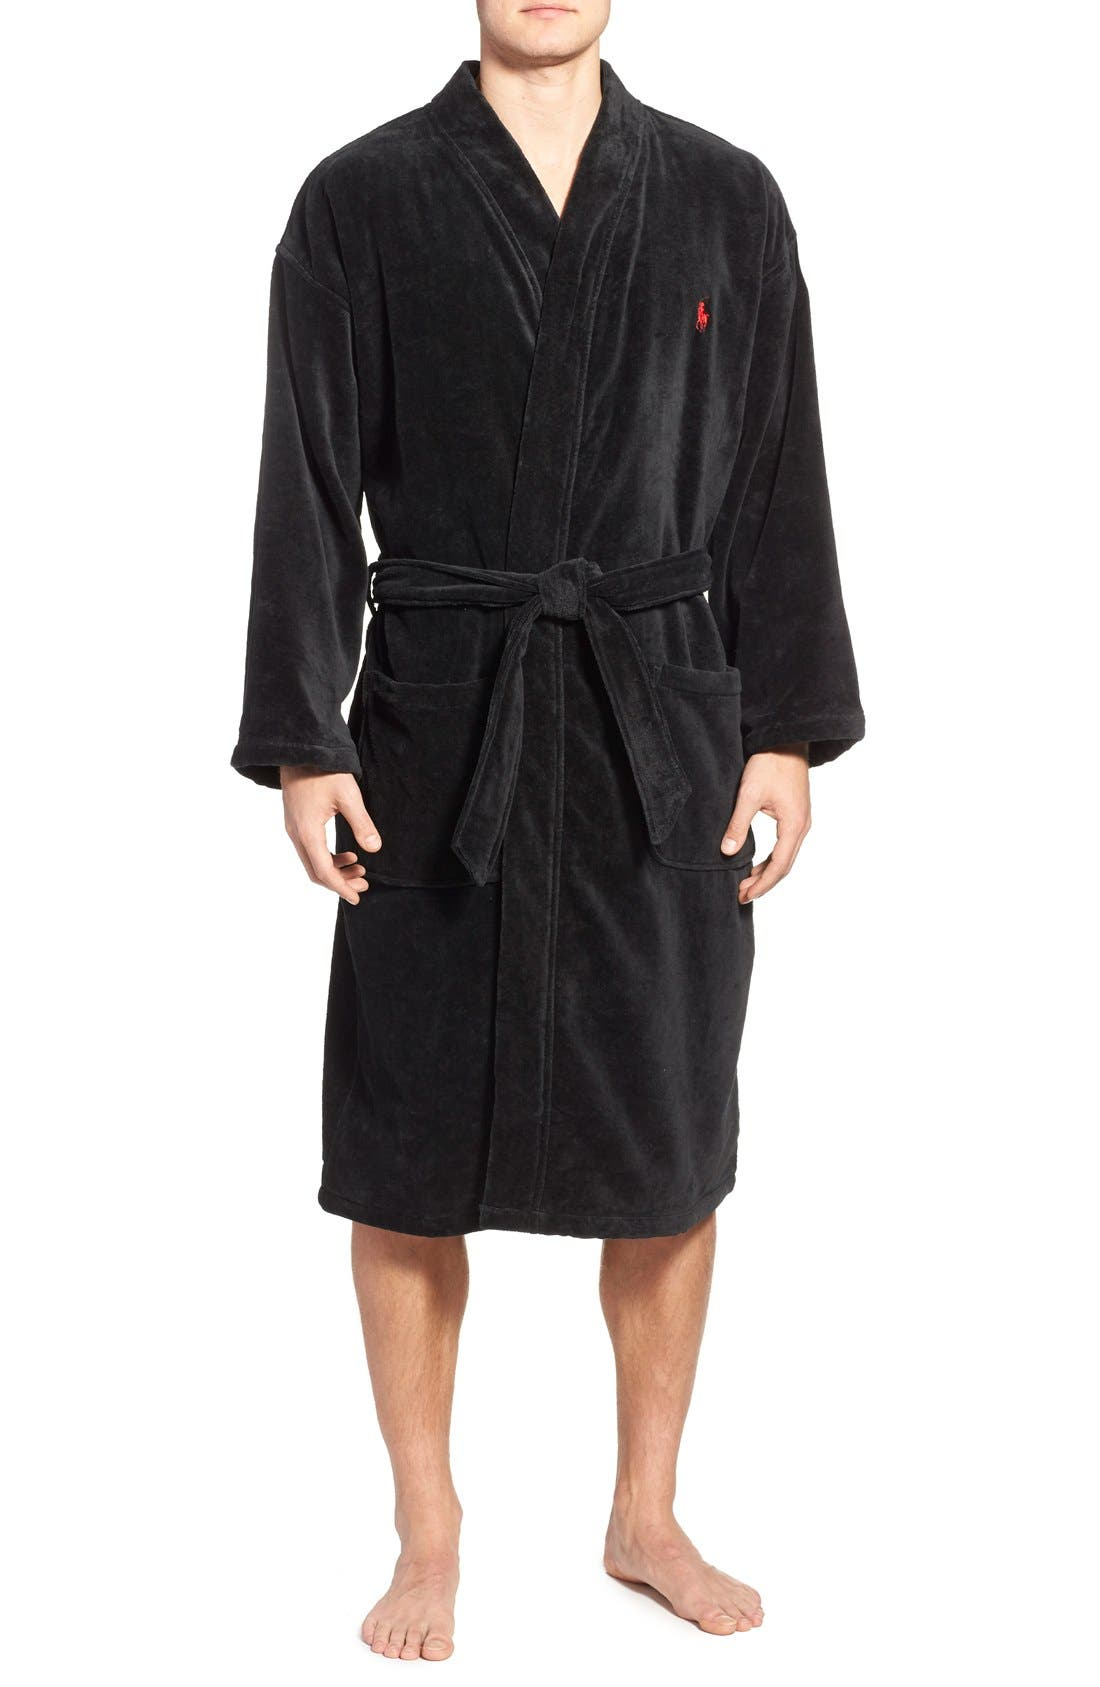 polo ralph lauren men 39 s sleepwear soft cotton kimono velour robe polo black modesens. Black Bedroom Furniture Sets. Home Design Ideas